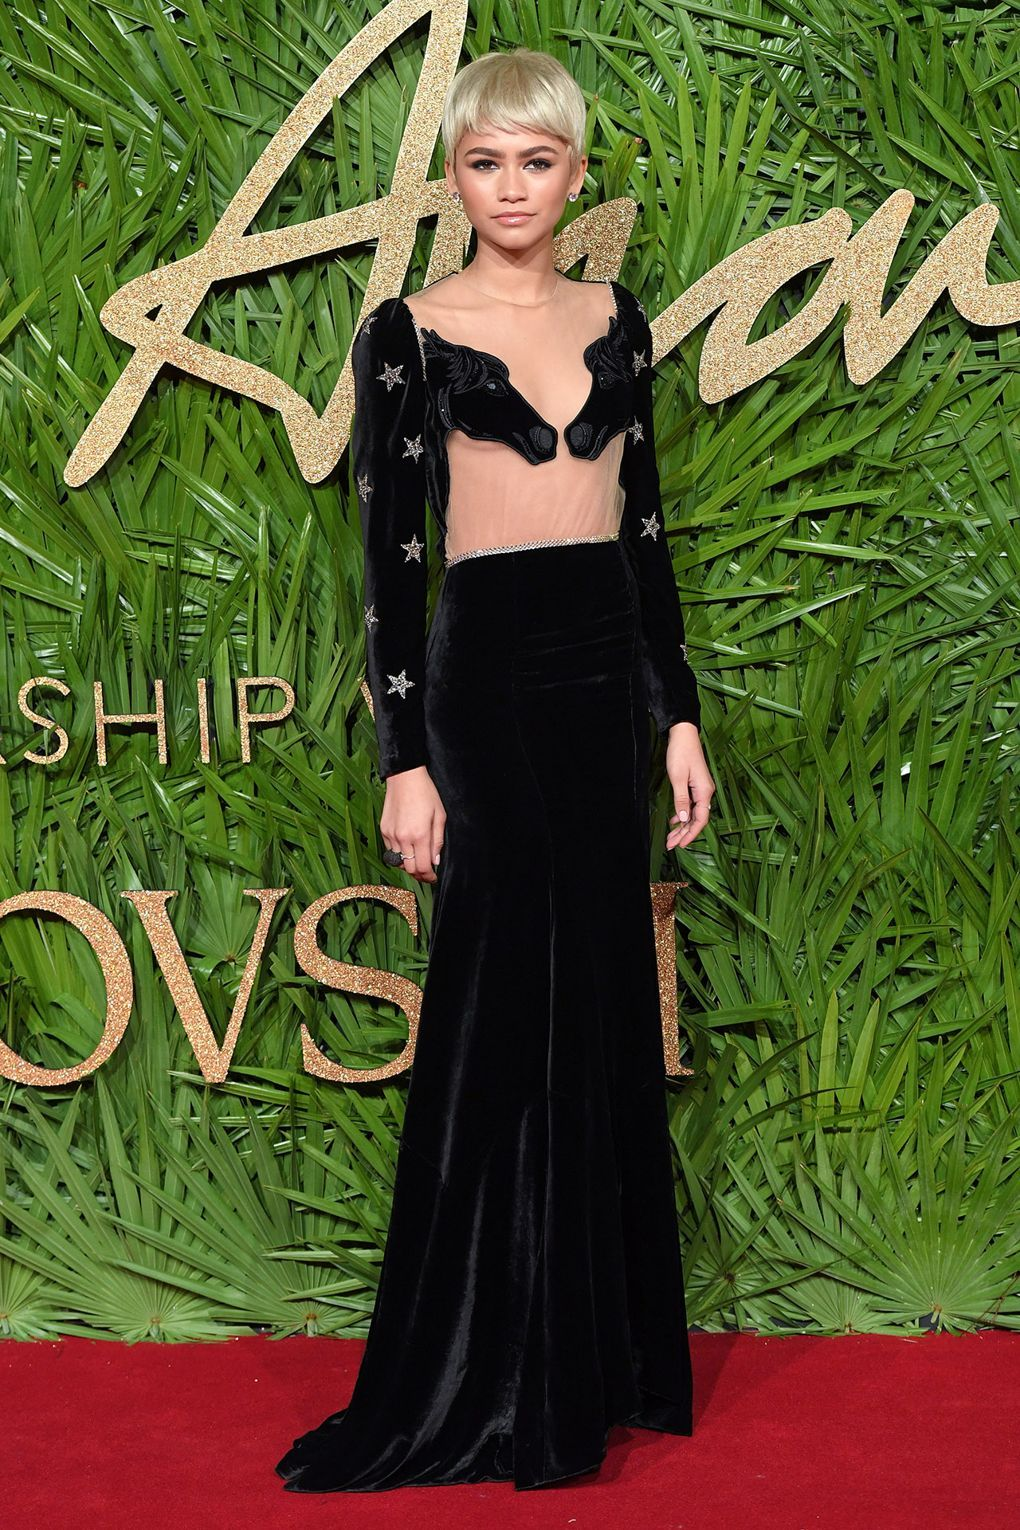 The fashion awards the mosttalked about looks of the night